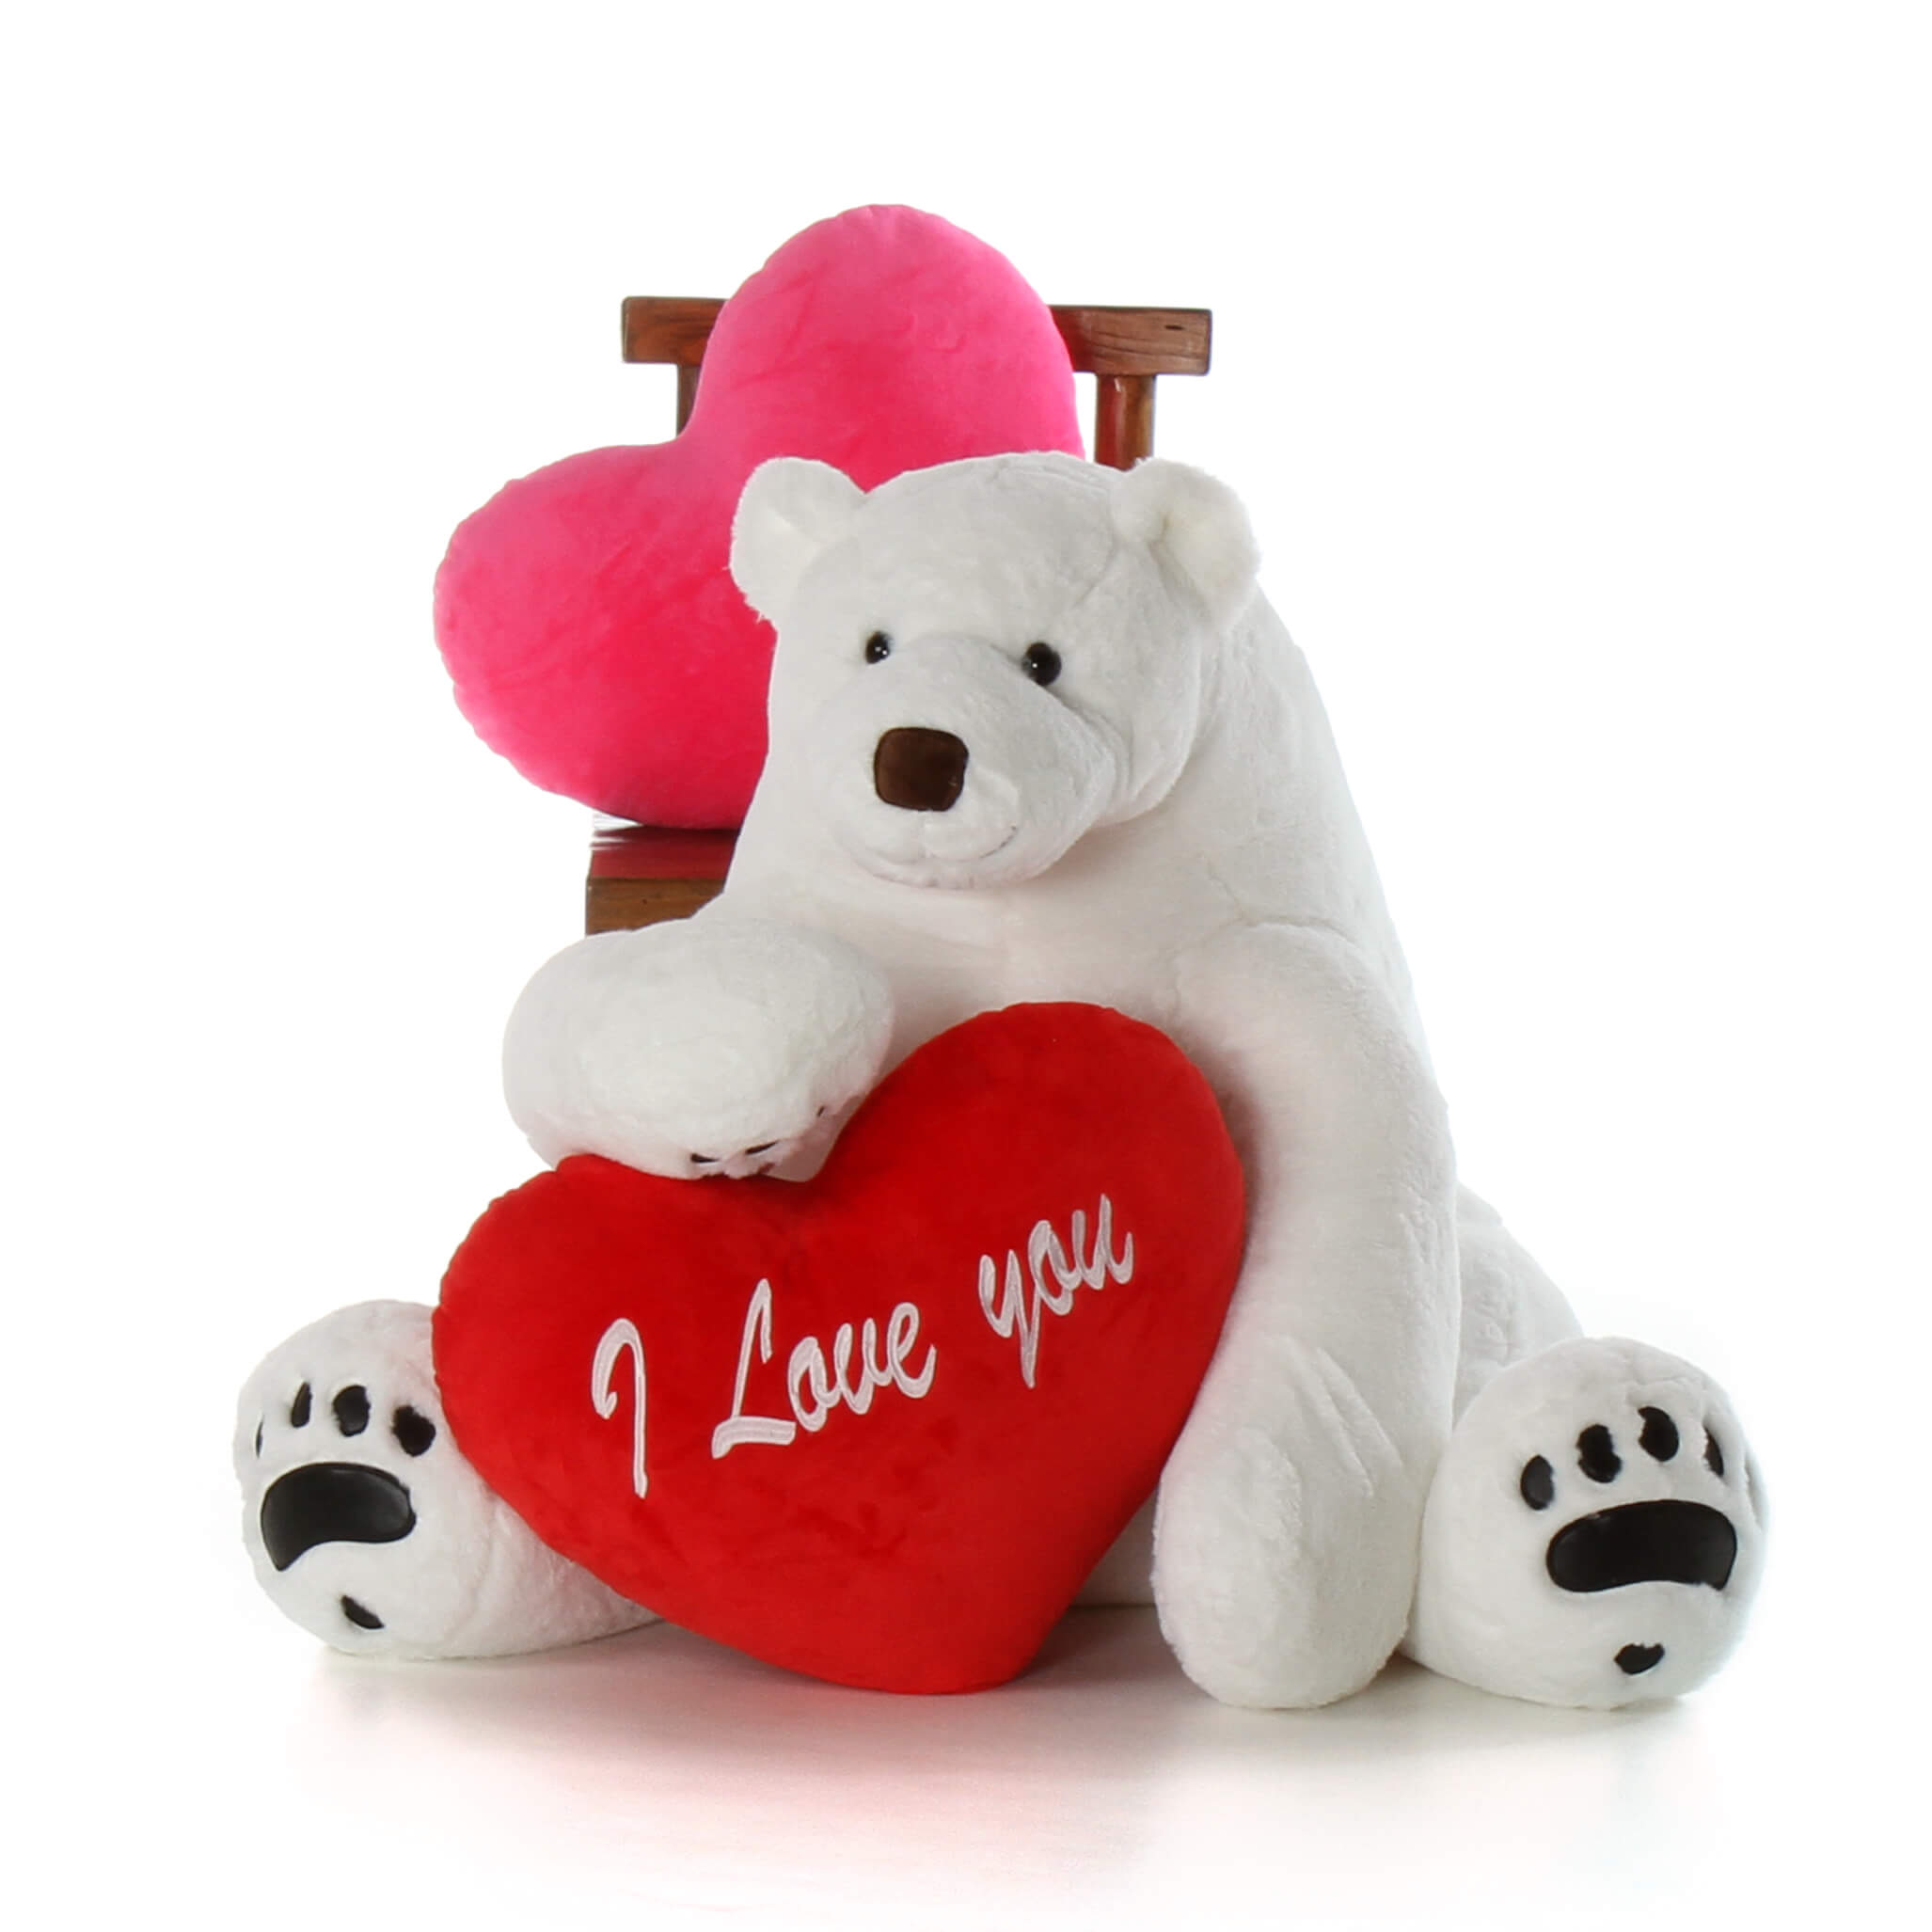 35in-huge-soft-huggable-polar-bear-marshmallow-frost-with-red-heart-pillow-1.jpg